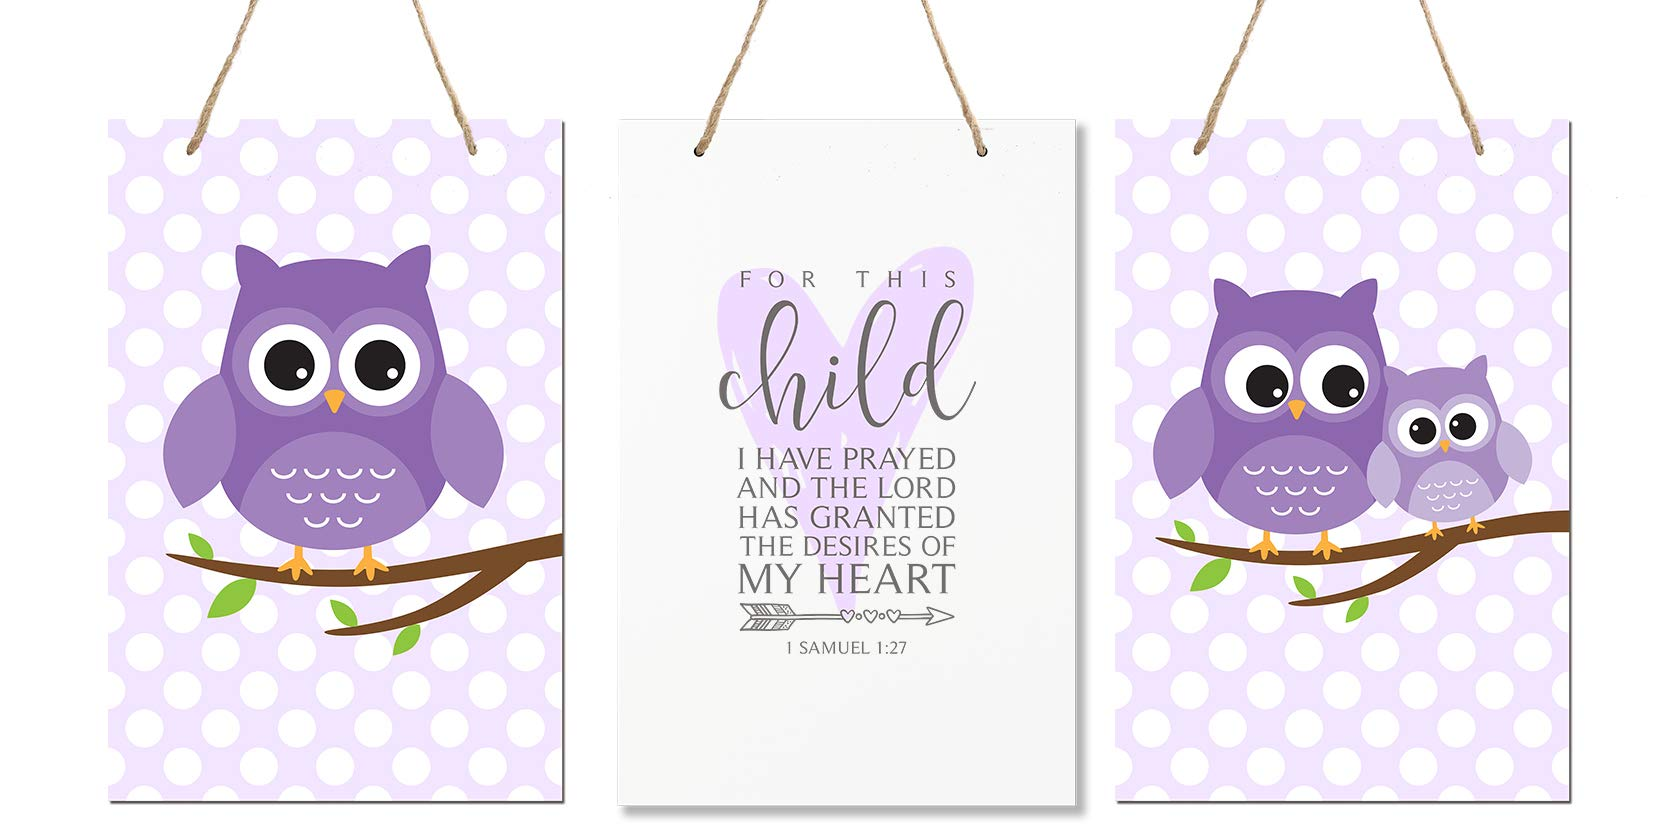 LifeSong Milestones for This Child I Have Prayed 3pc Owl Wall Decor Decorations Hanging Signs for Kids, Bedroom, Nursery, Baby Boys and Girls Room Size 8'' x 12'' 3pc Set (Purple) by LifeSong Milestones